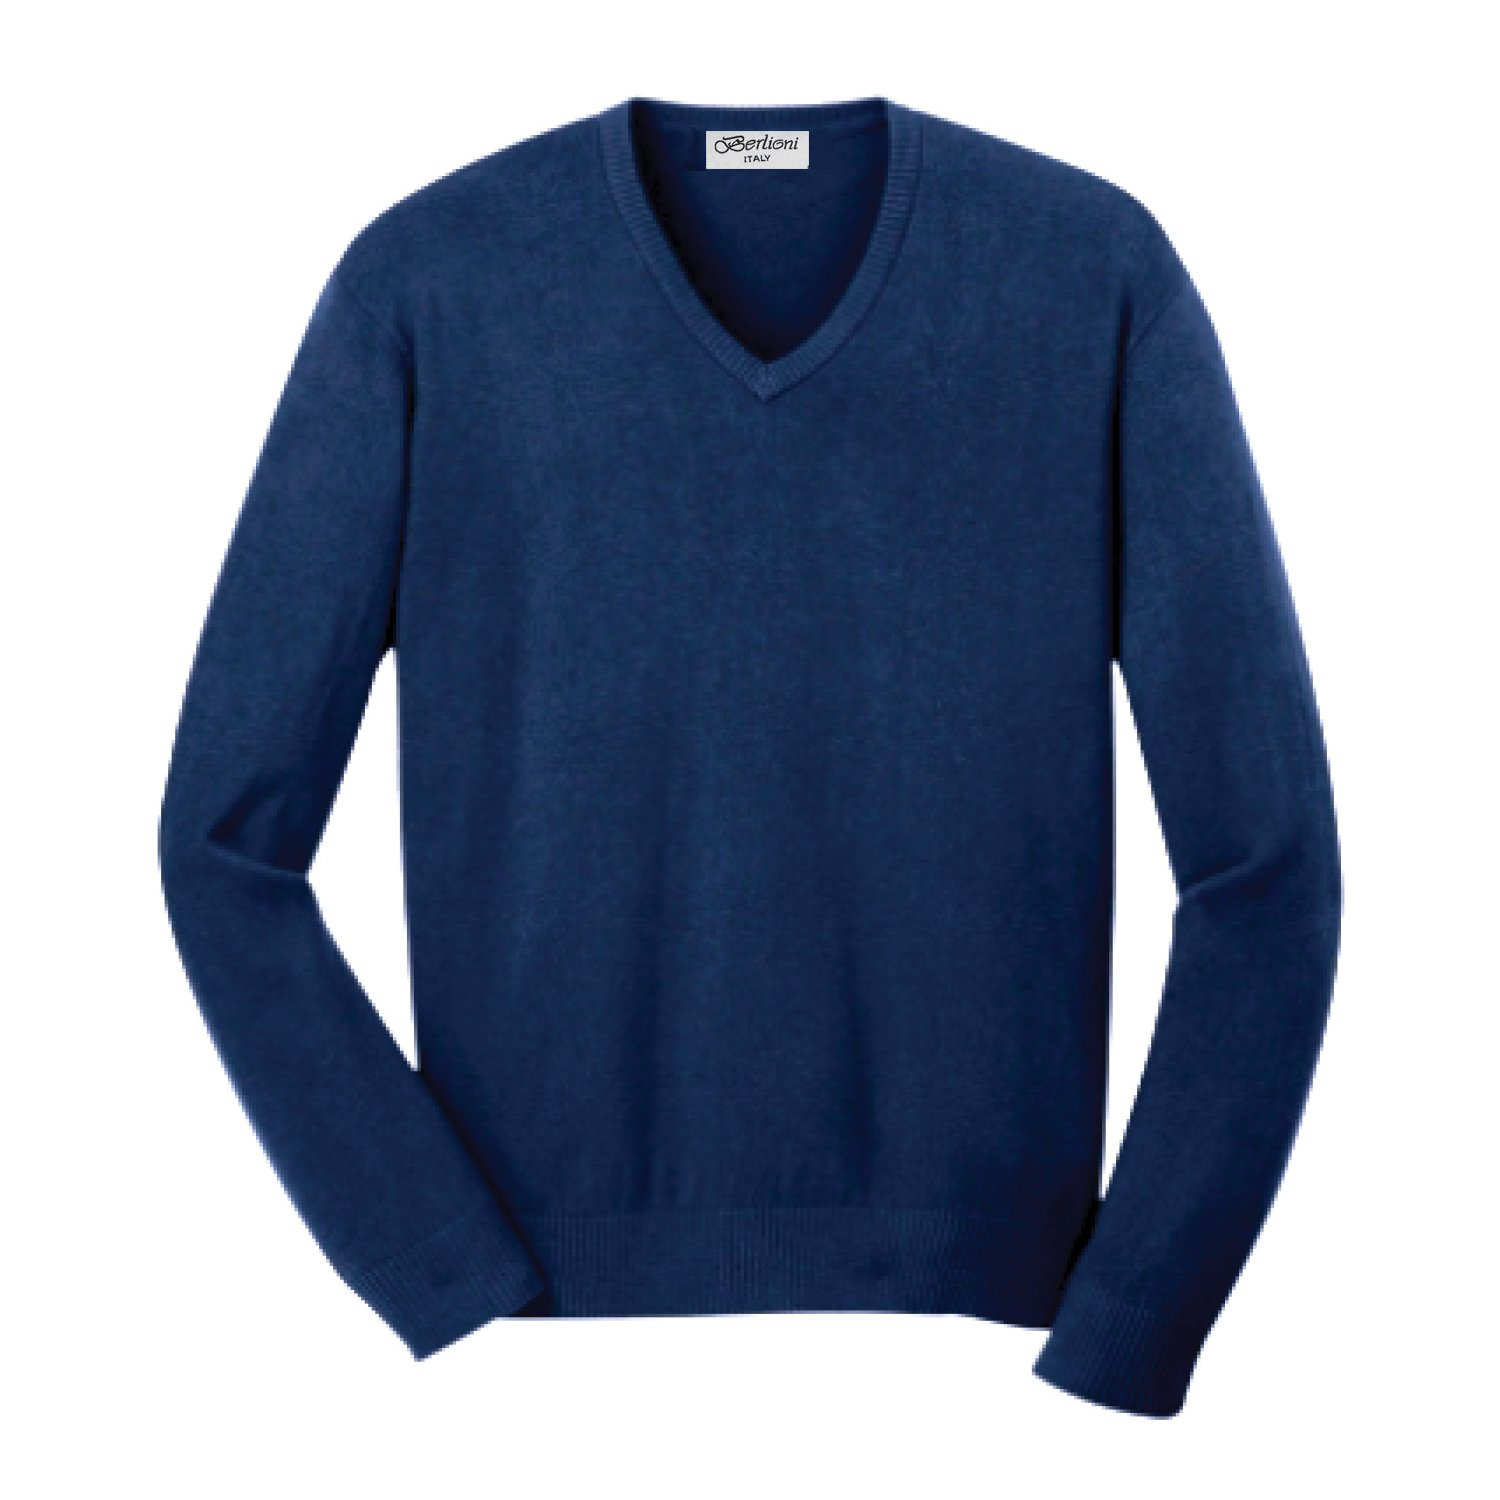 Men's Slim Fit V-neck Sweater - Many Colors Available at Amazon ...